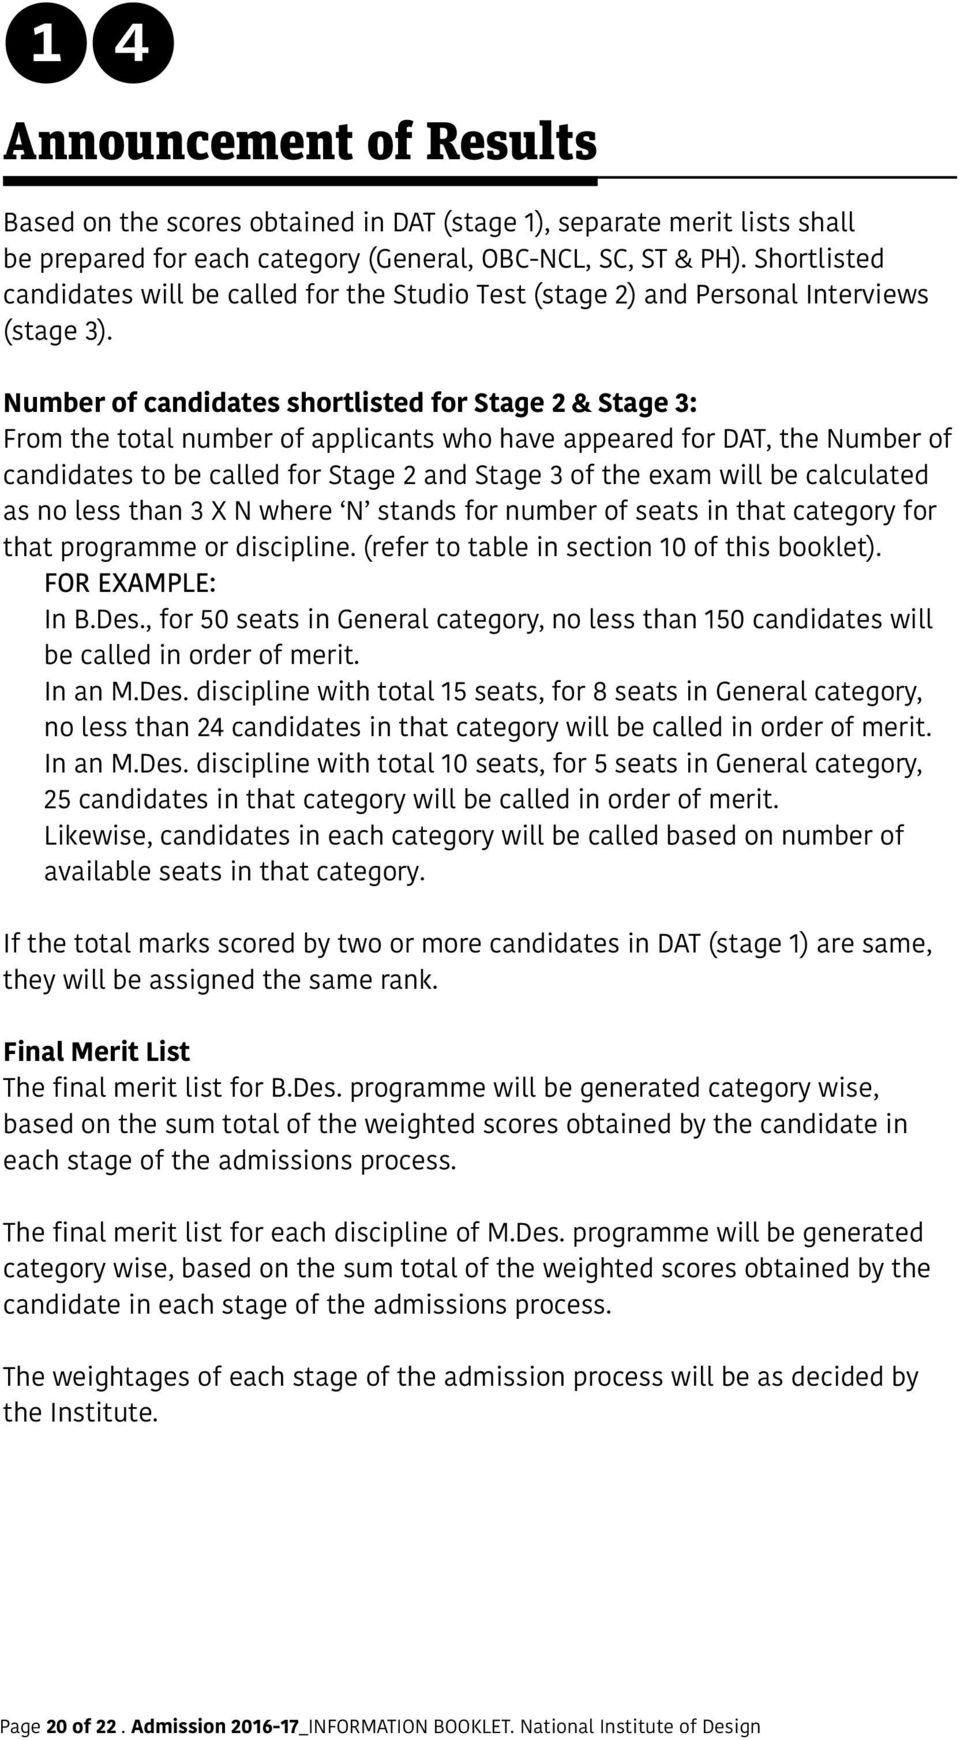 Number of candidates shortlisted for Stage 2 & Stage 3: From the total number of applicants who have appeared for DAT, the Number of candidates to be called for Stage 2 and Stage 3 of the exam will